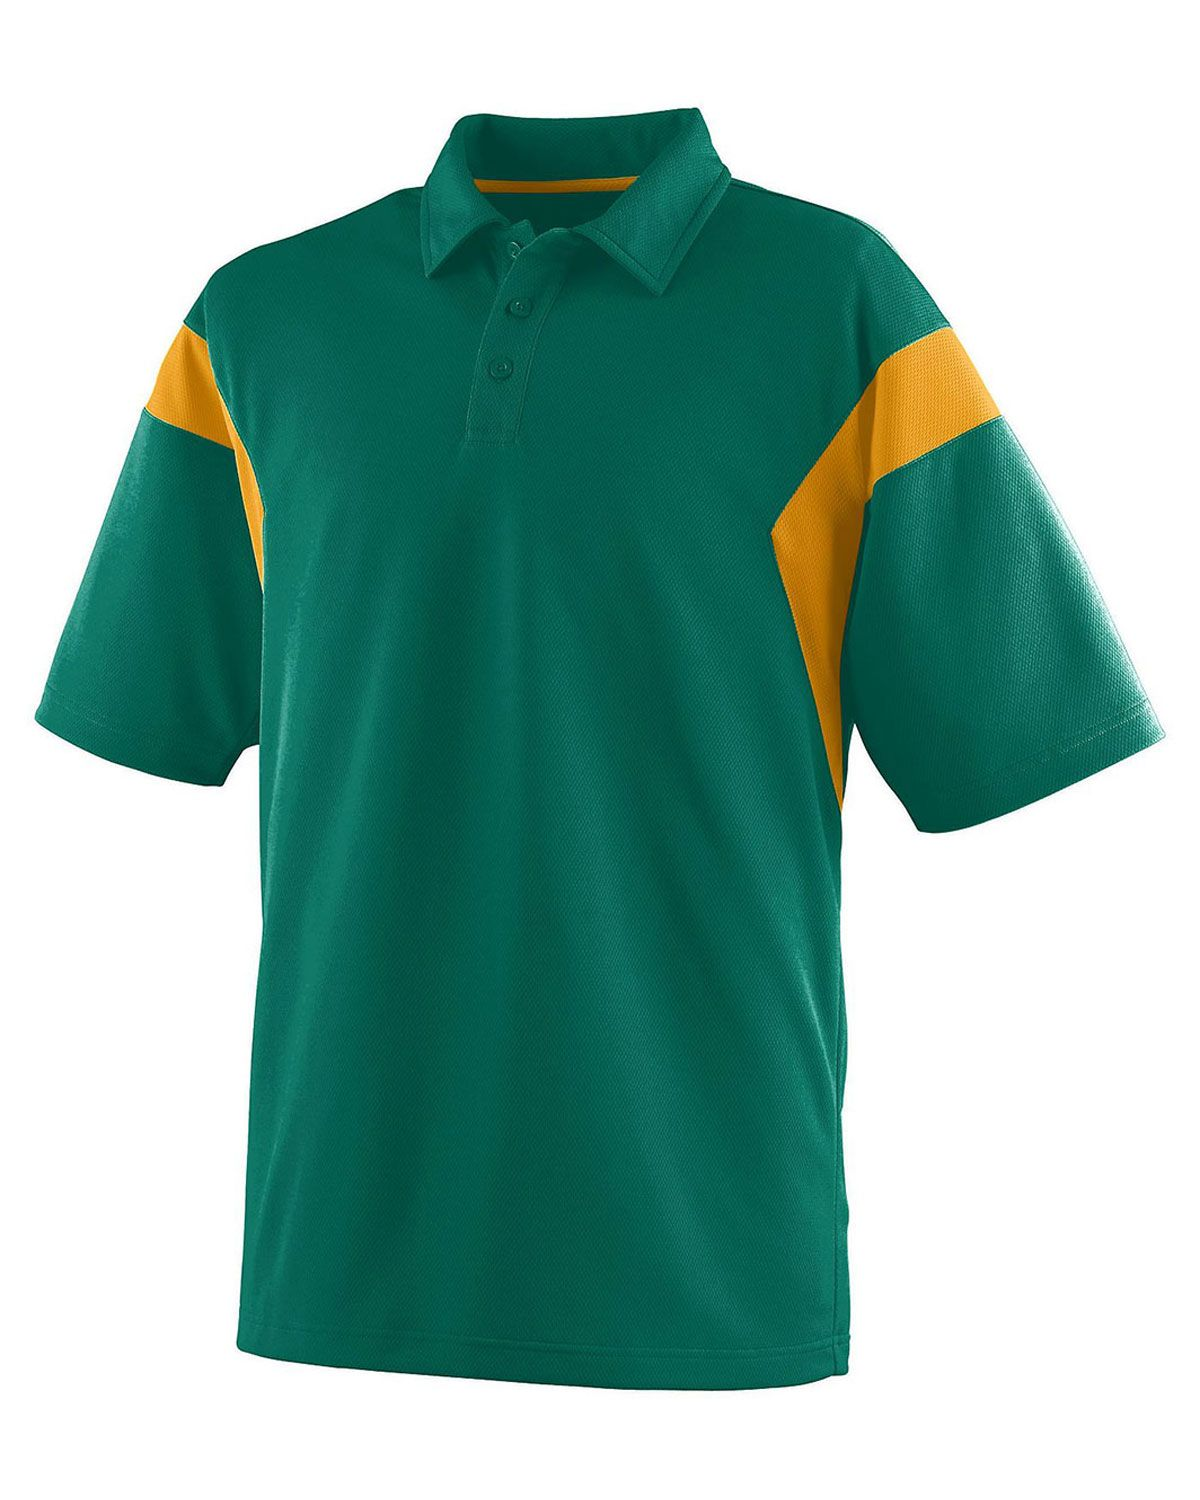 Augusta Mens Wicking Mesh Sideline Sport Shirt X-Large, Dark Green//gold